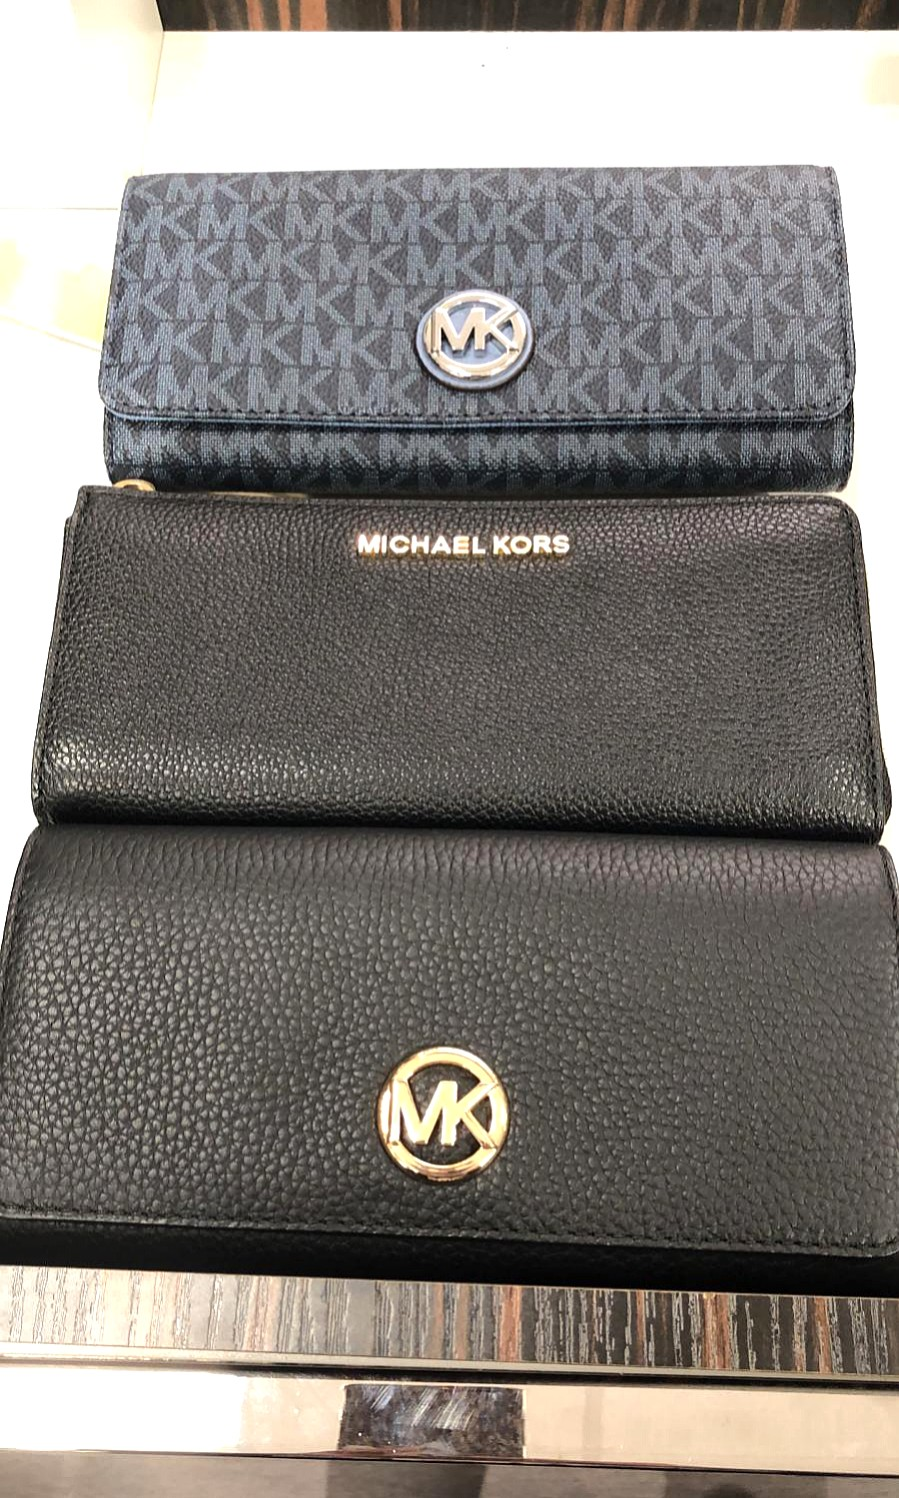 74d25c6f6b1a 163 ONLY. Michael Kors Long Wallet JUST ARRIVED!, Luxury, Bags ...